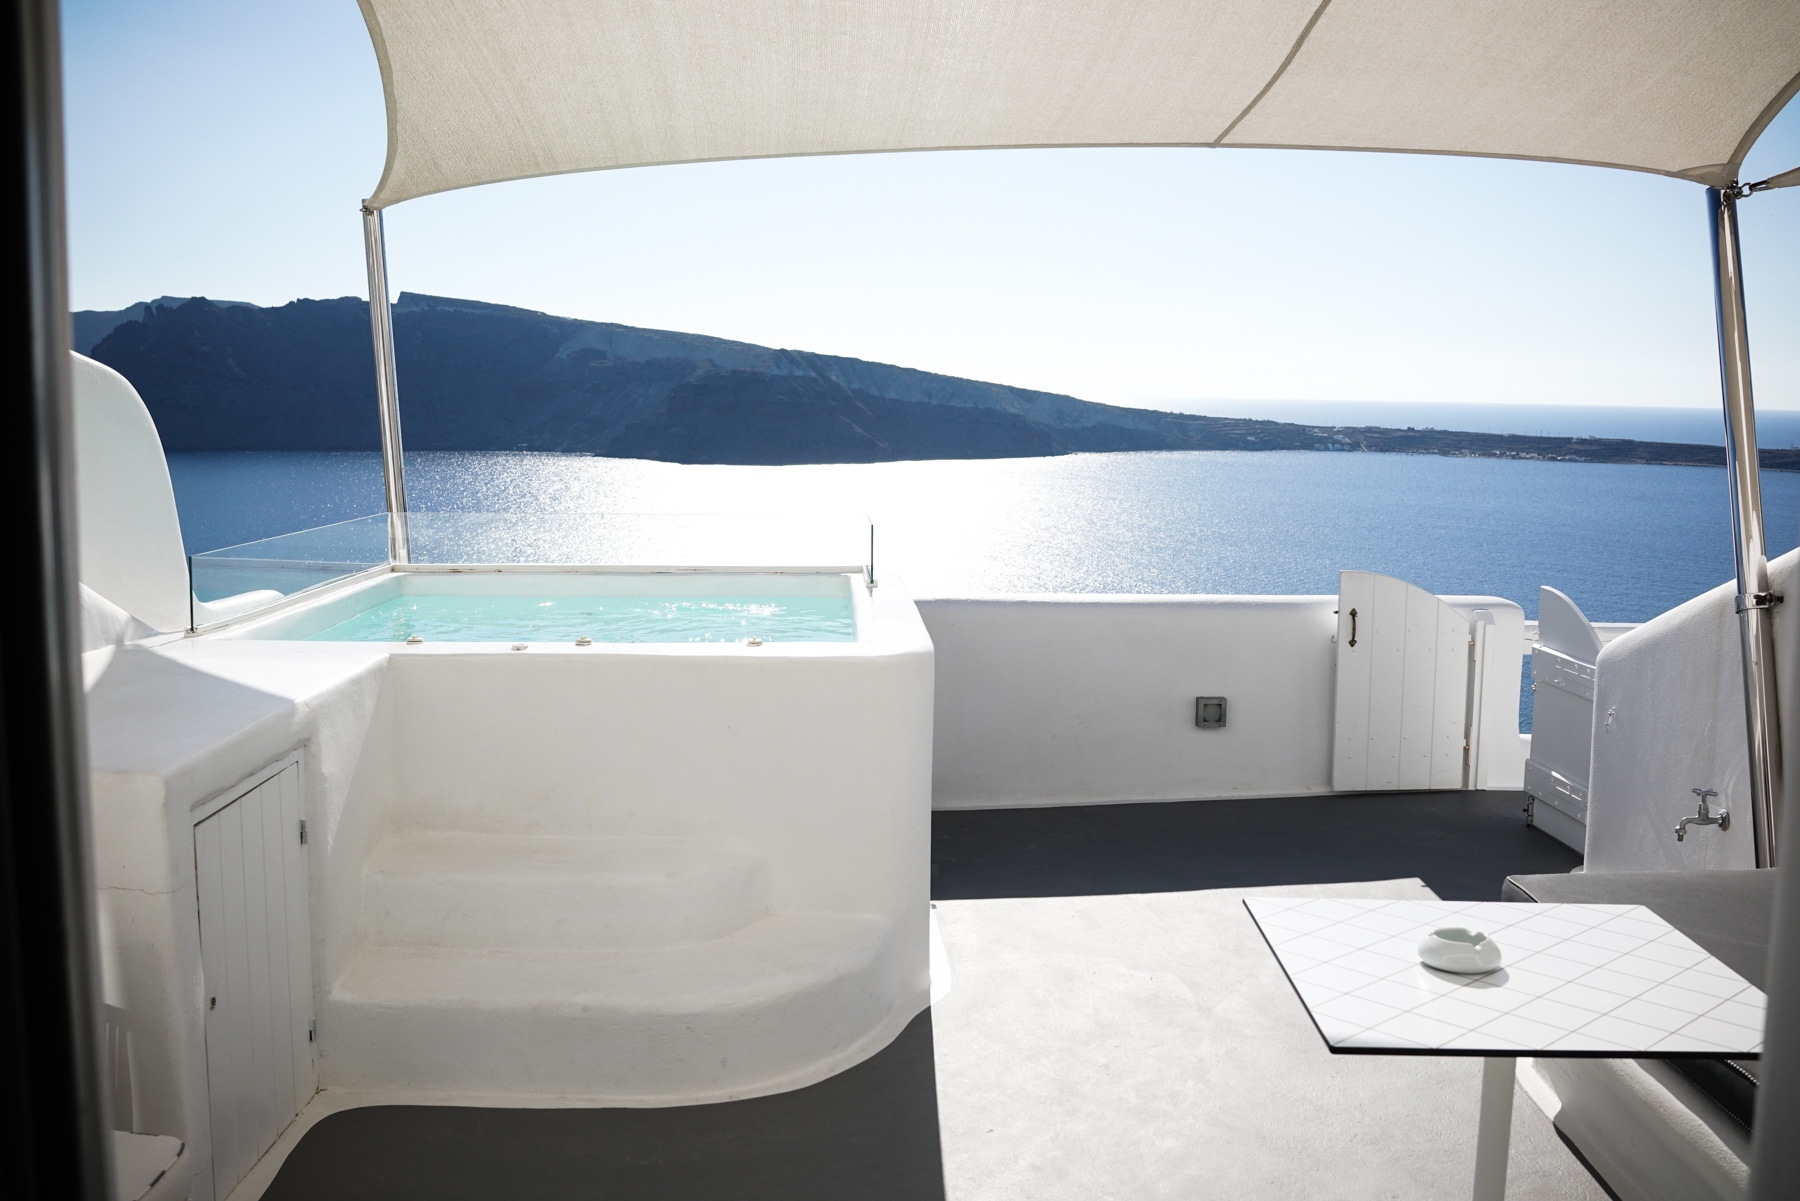 style-shiver-travel-with-booking-com-in-santorin-22